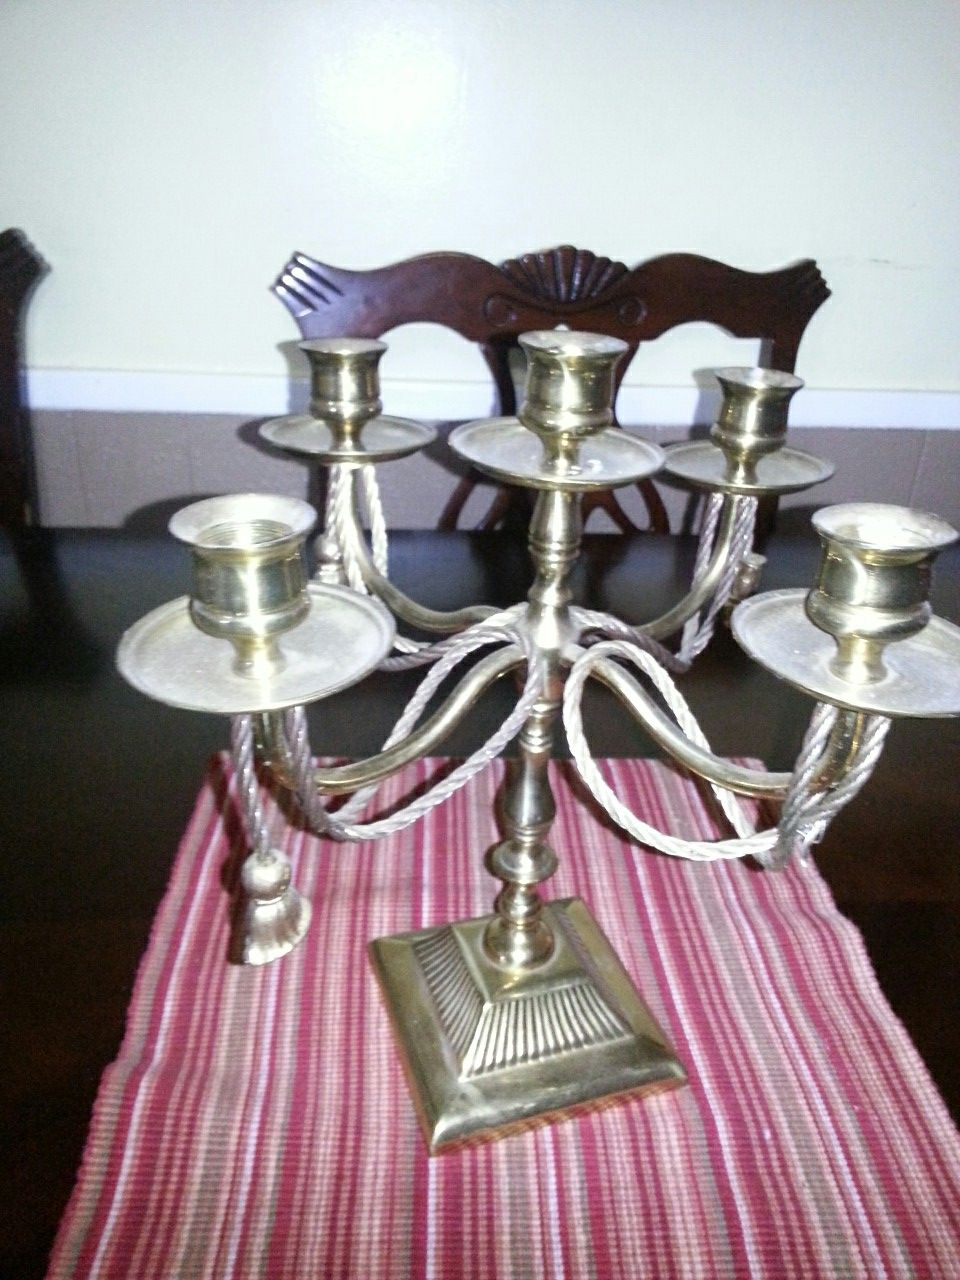 Allen Home Collection candle holder